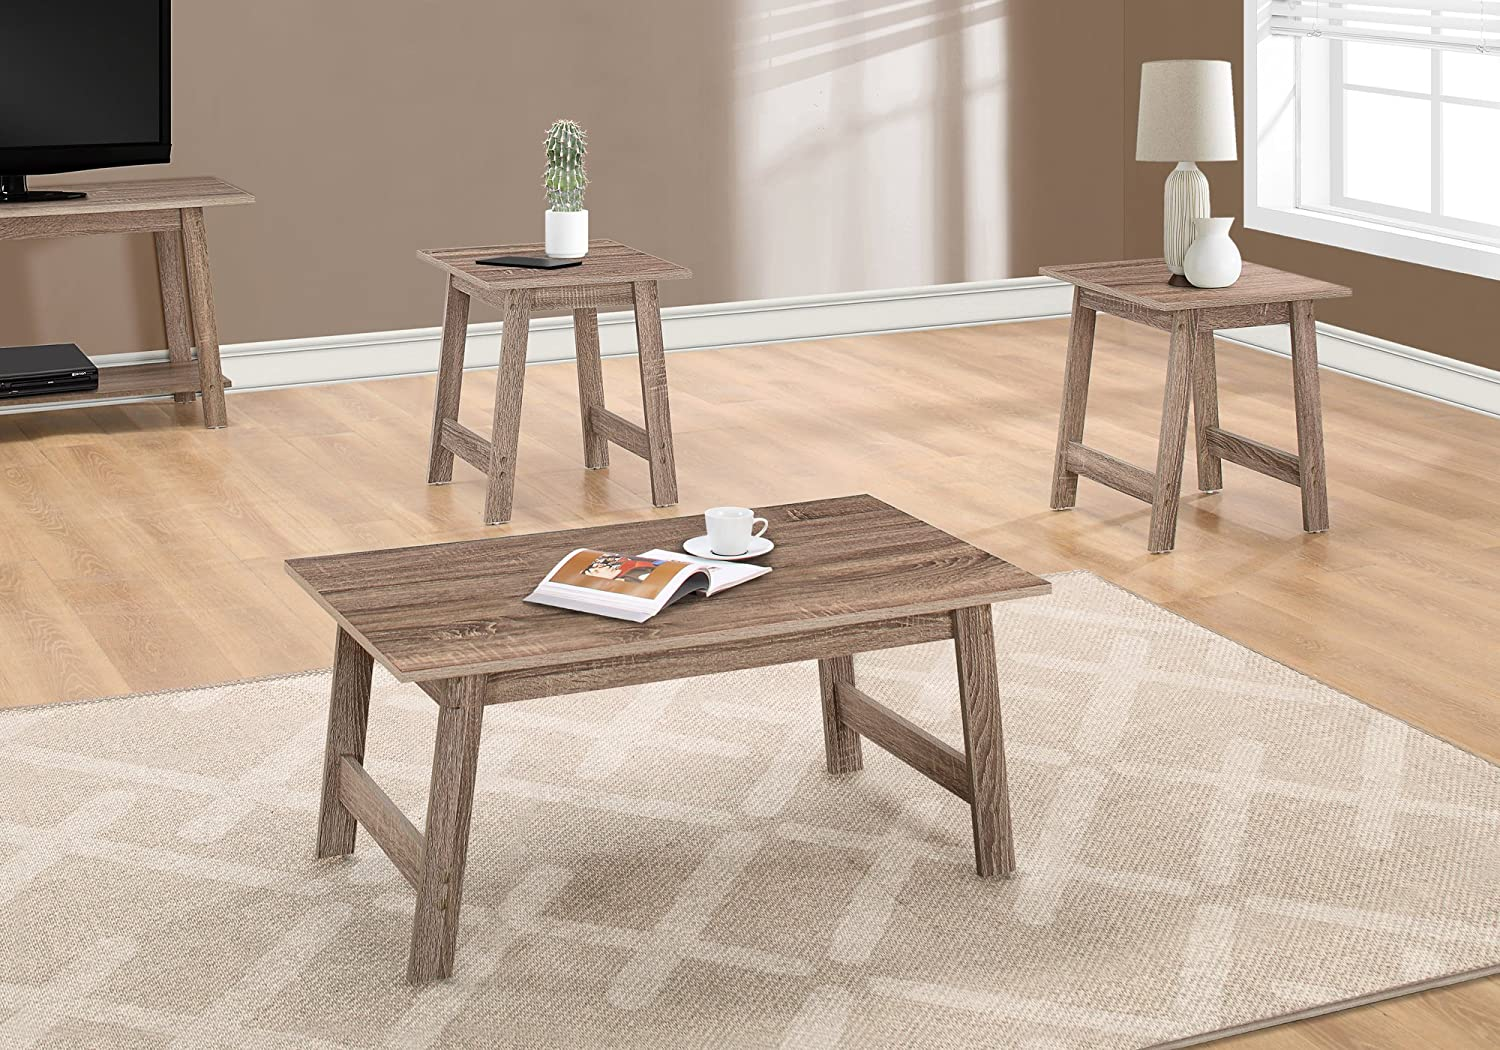 Online limited product Monarch Specialties I Max 70% OFF Table Taupe Set SET-3PCS Dark